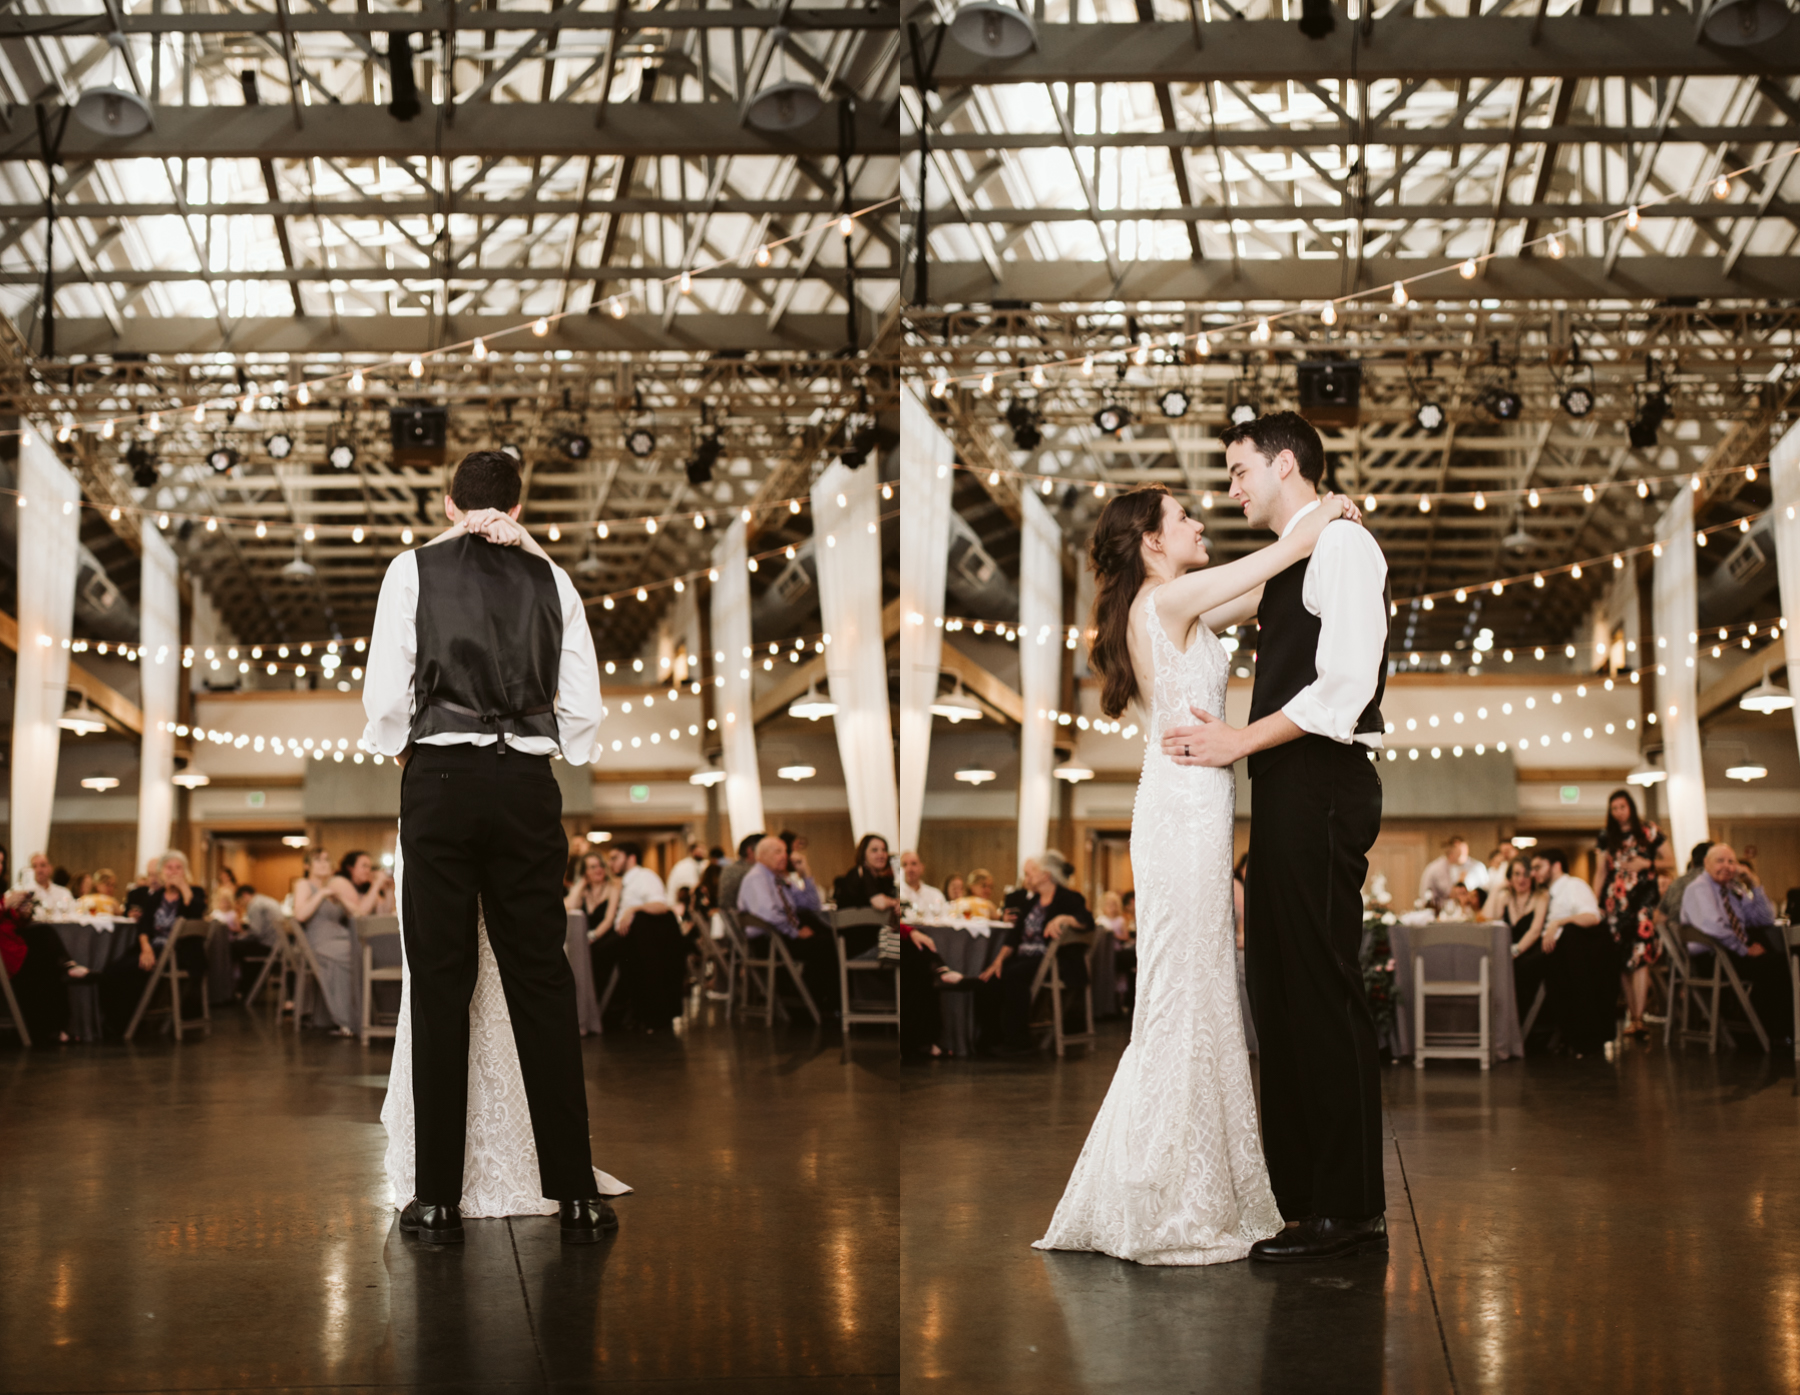 first dances at a Wedding reception at the loveless cafe and barn in nashville, tennessee